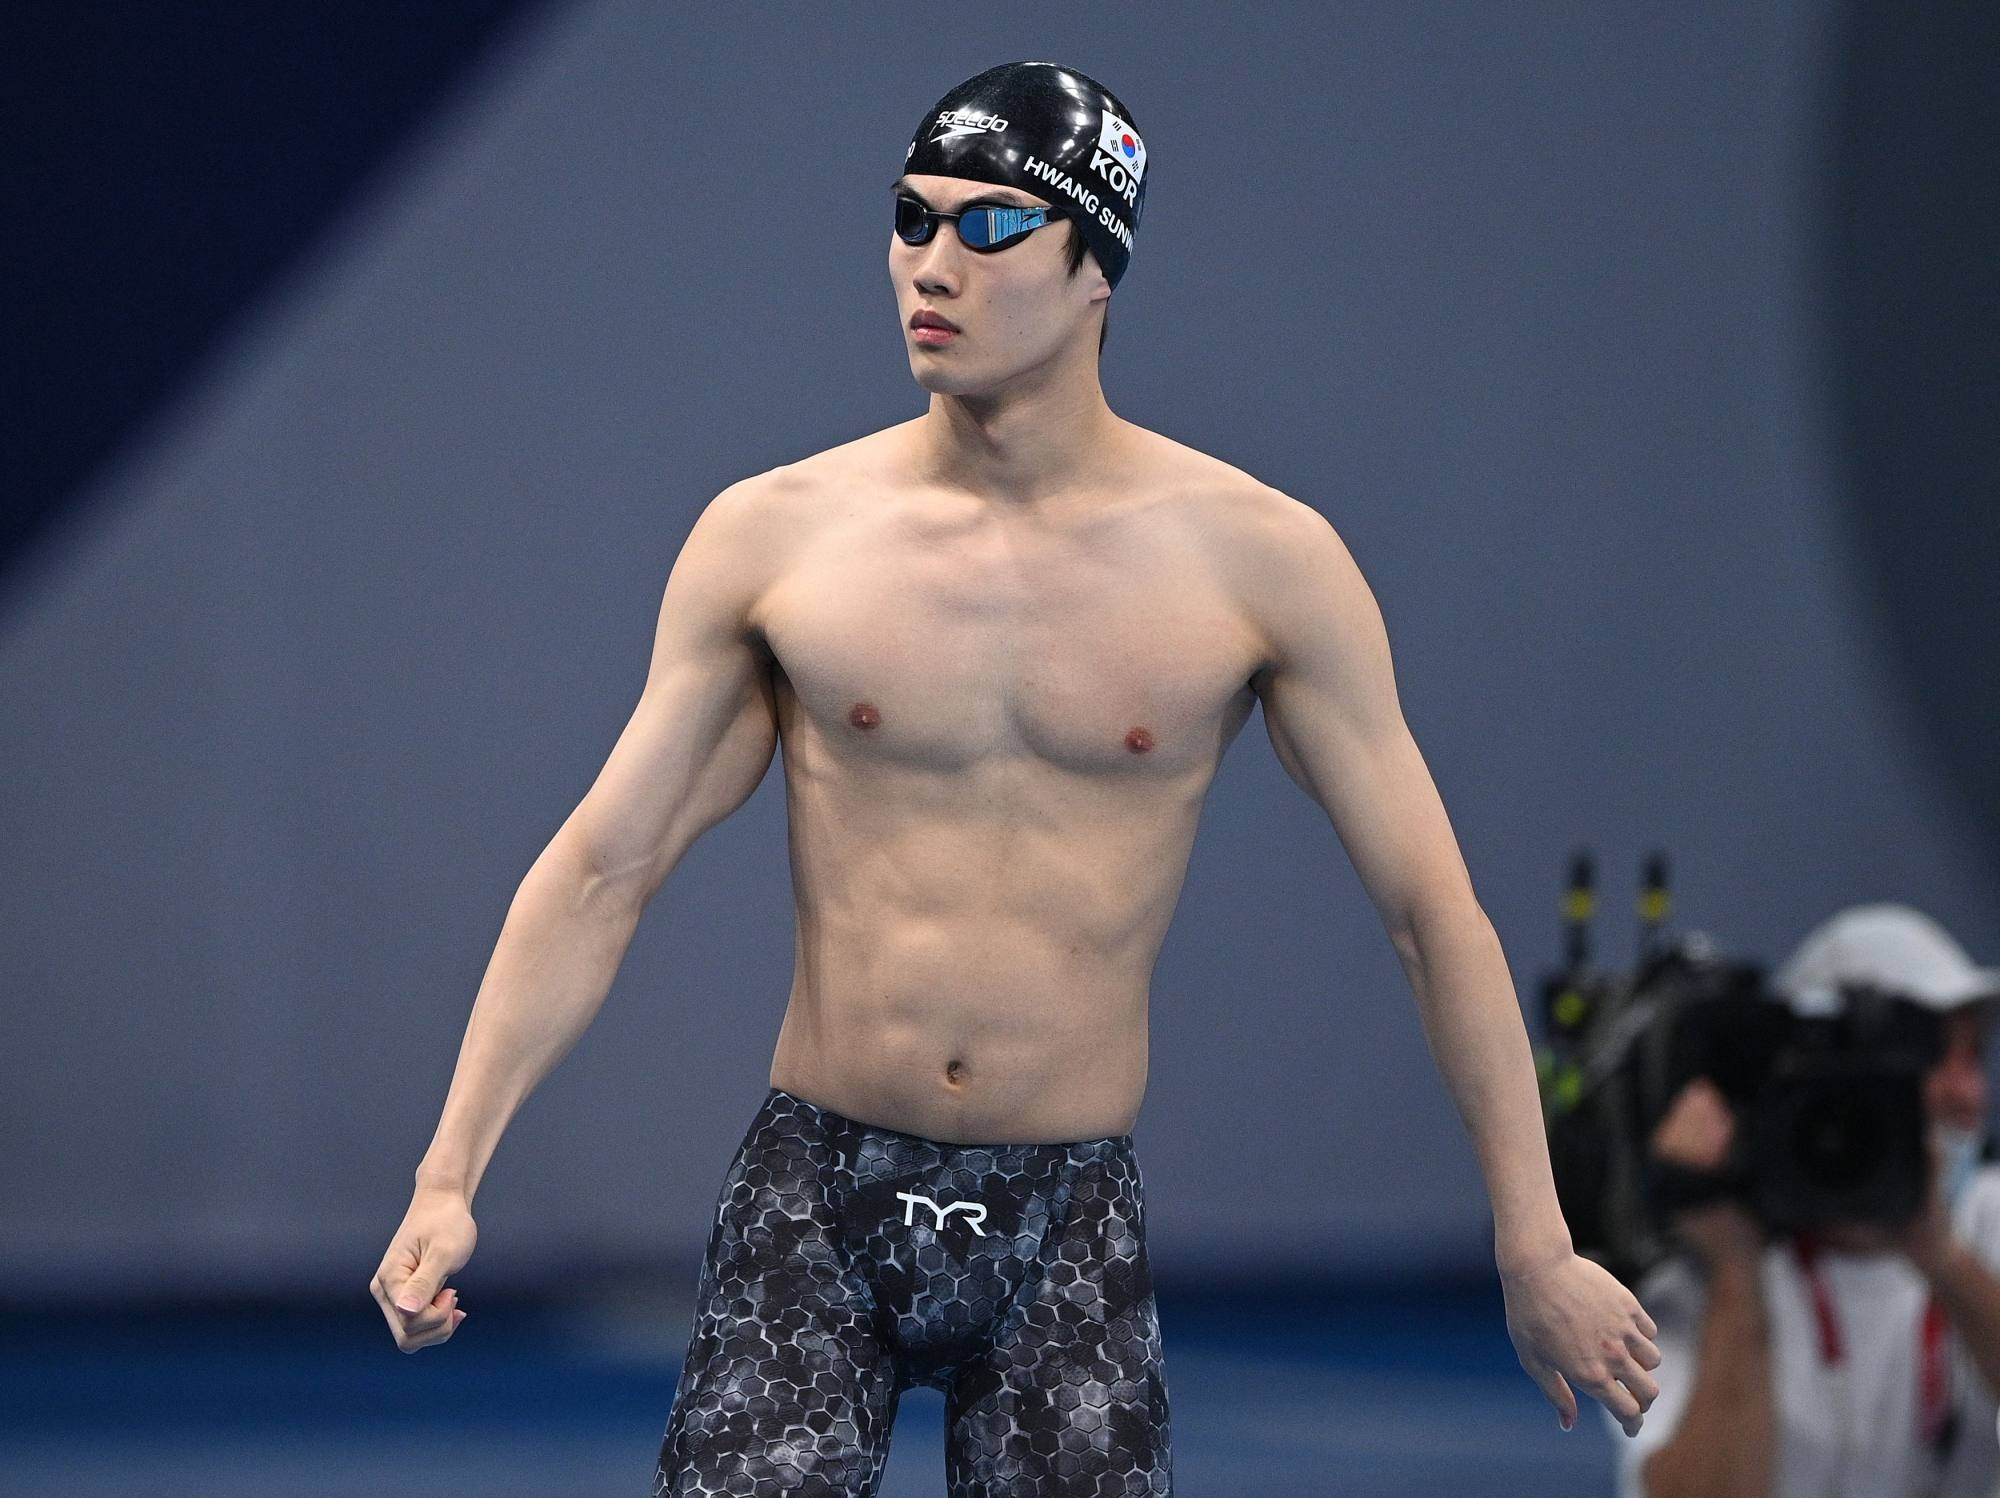 Van dong vien Olympic thich Kpop anh 1